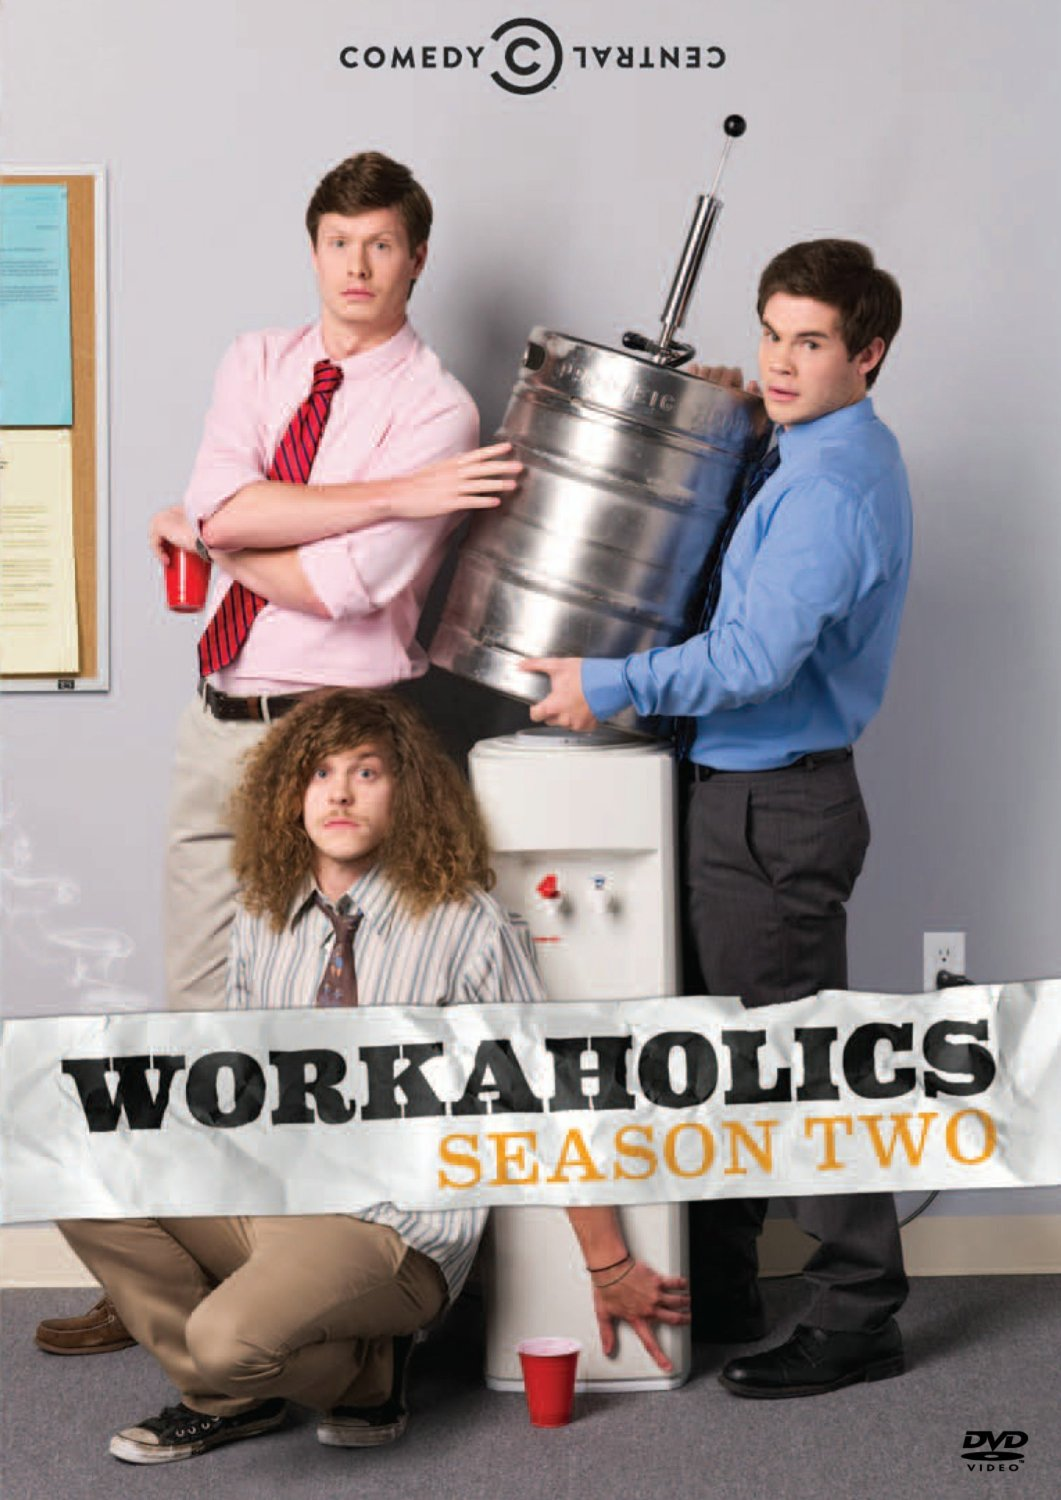 Workaholics Season 2 funtvshow